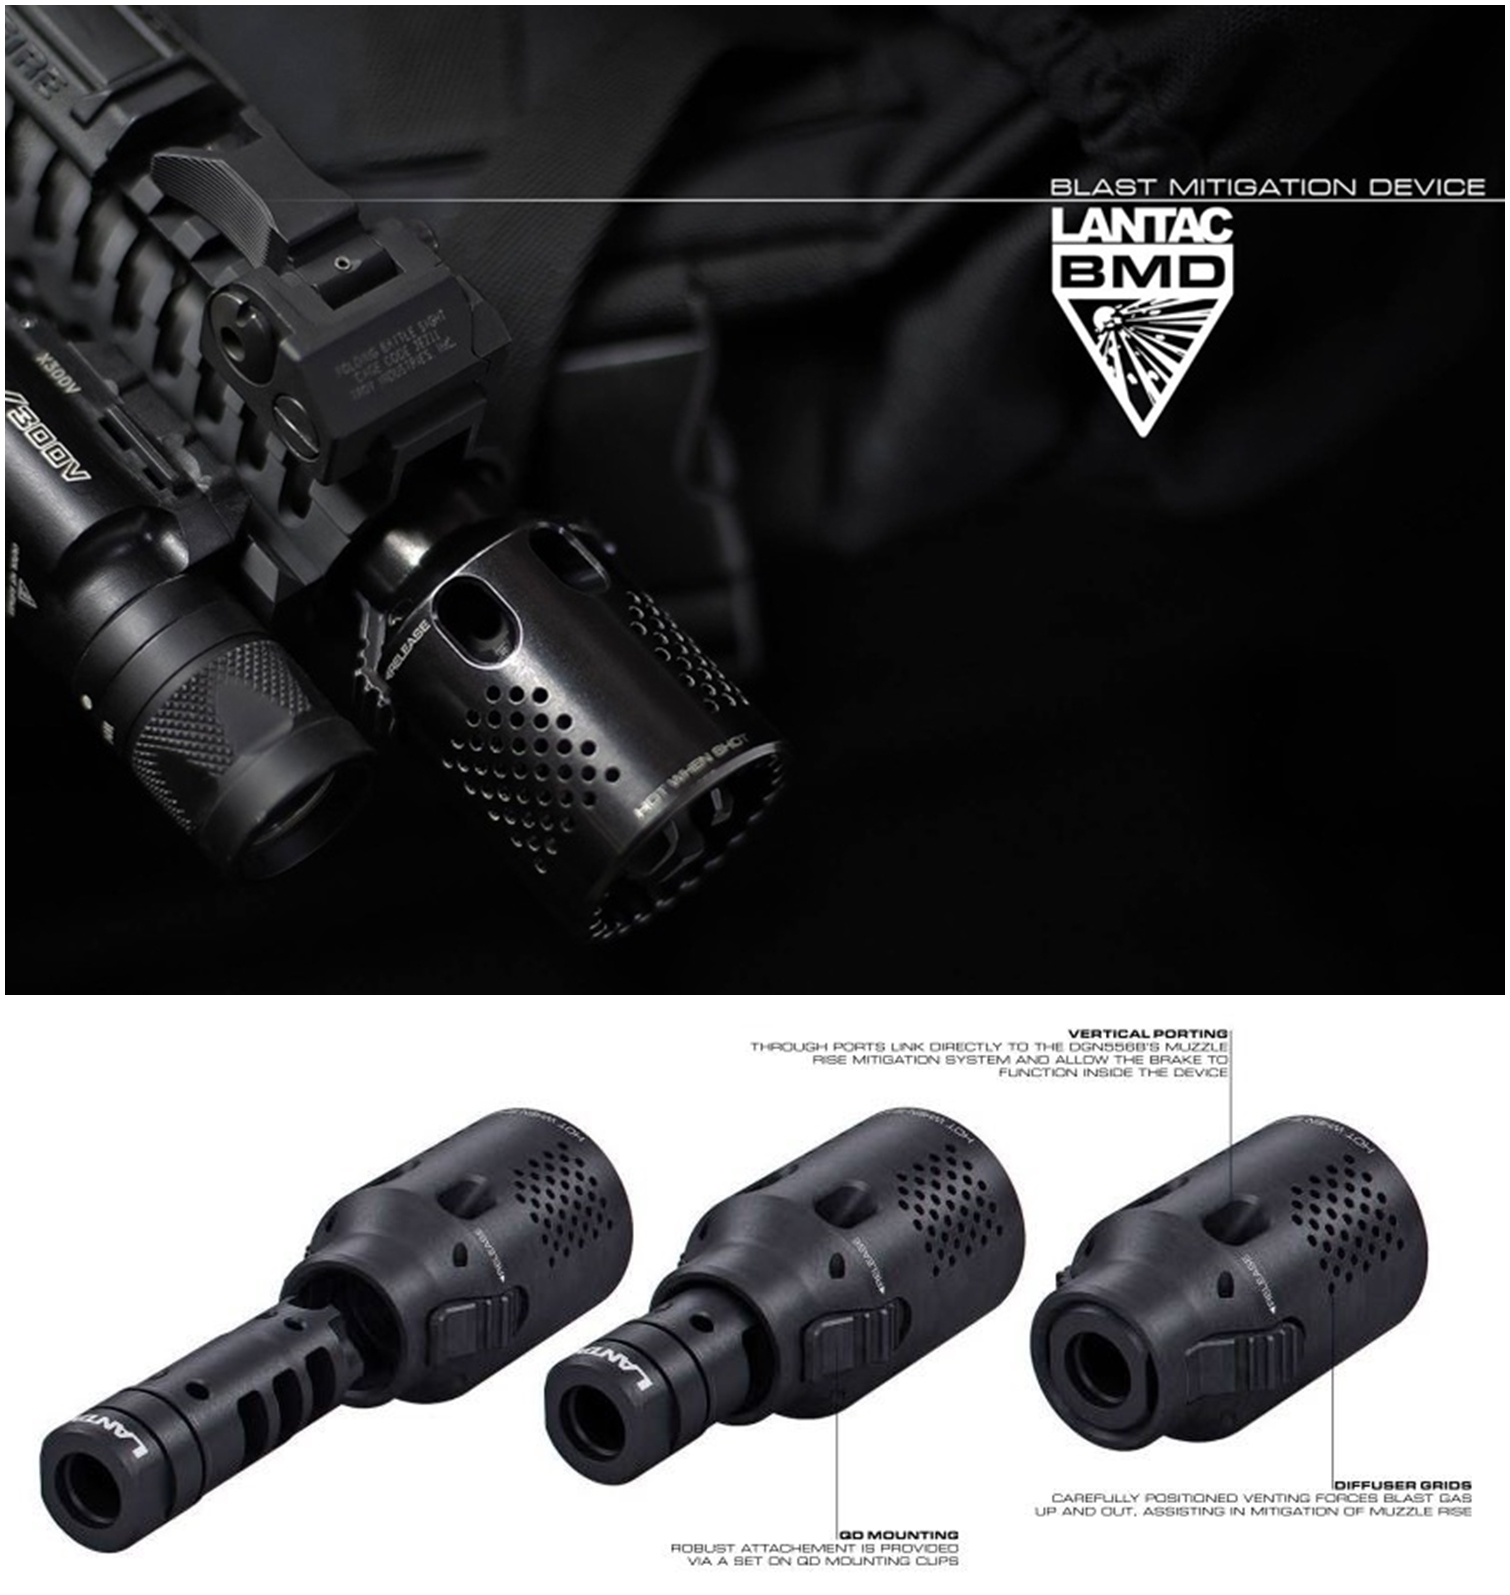 17-2 実物 LANTAC × NOVESKE MARKED DRAGON MUZZLE BRAKE 556 ドラゴン マズル ブレイク ノベスケ ハイダー 購入 取付 カスタム レビュー LANTAC USA BMD Blast Mitigation Device, Complete with A2 Adapter Coll